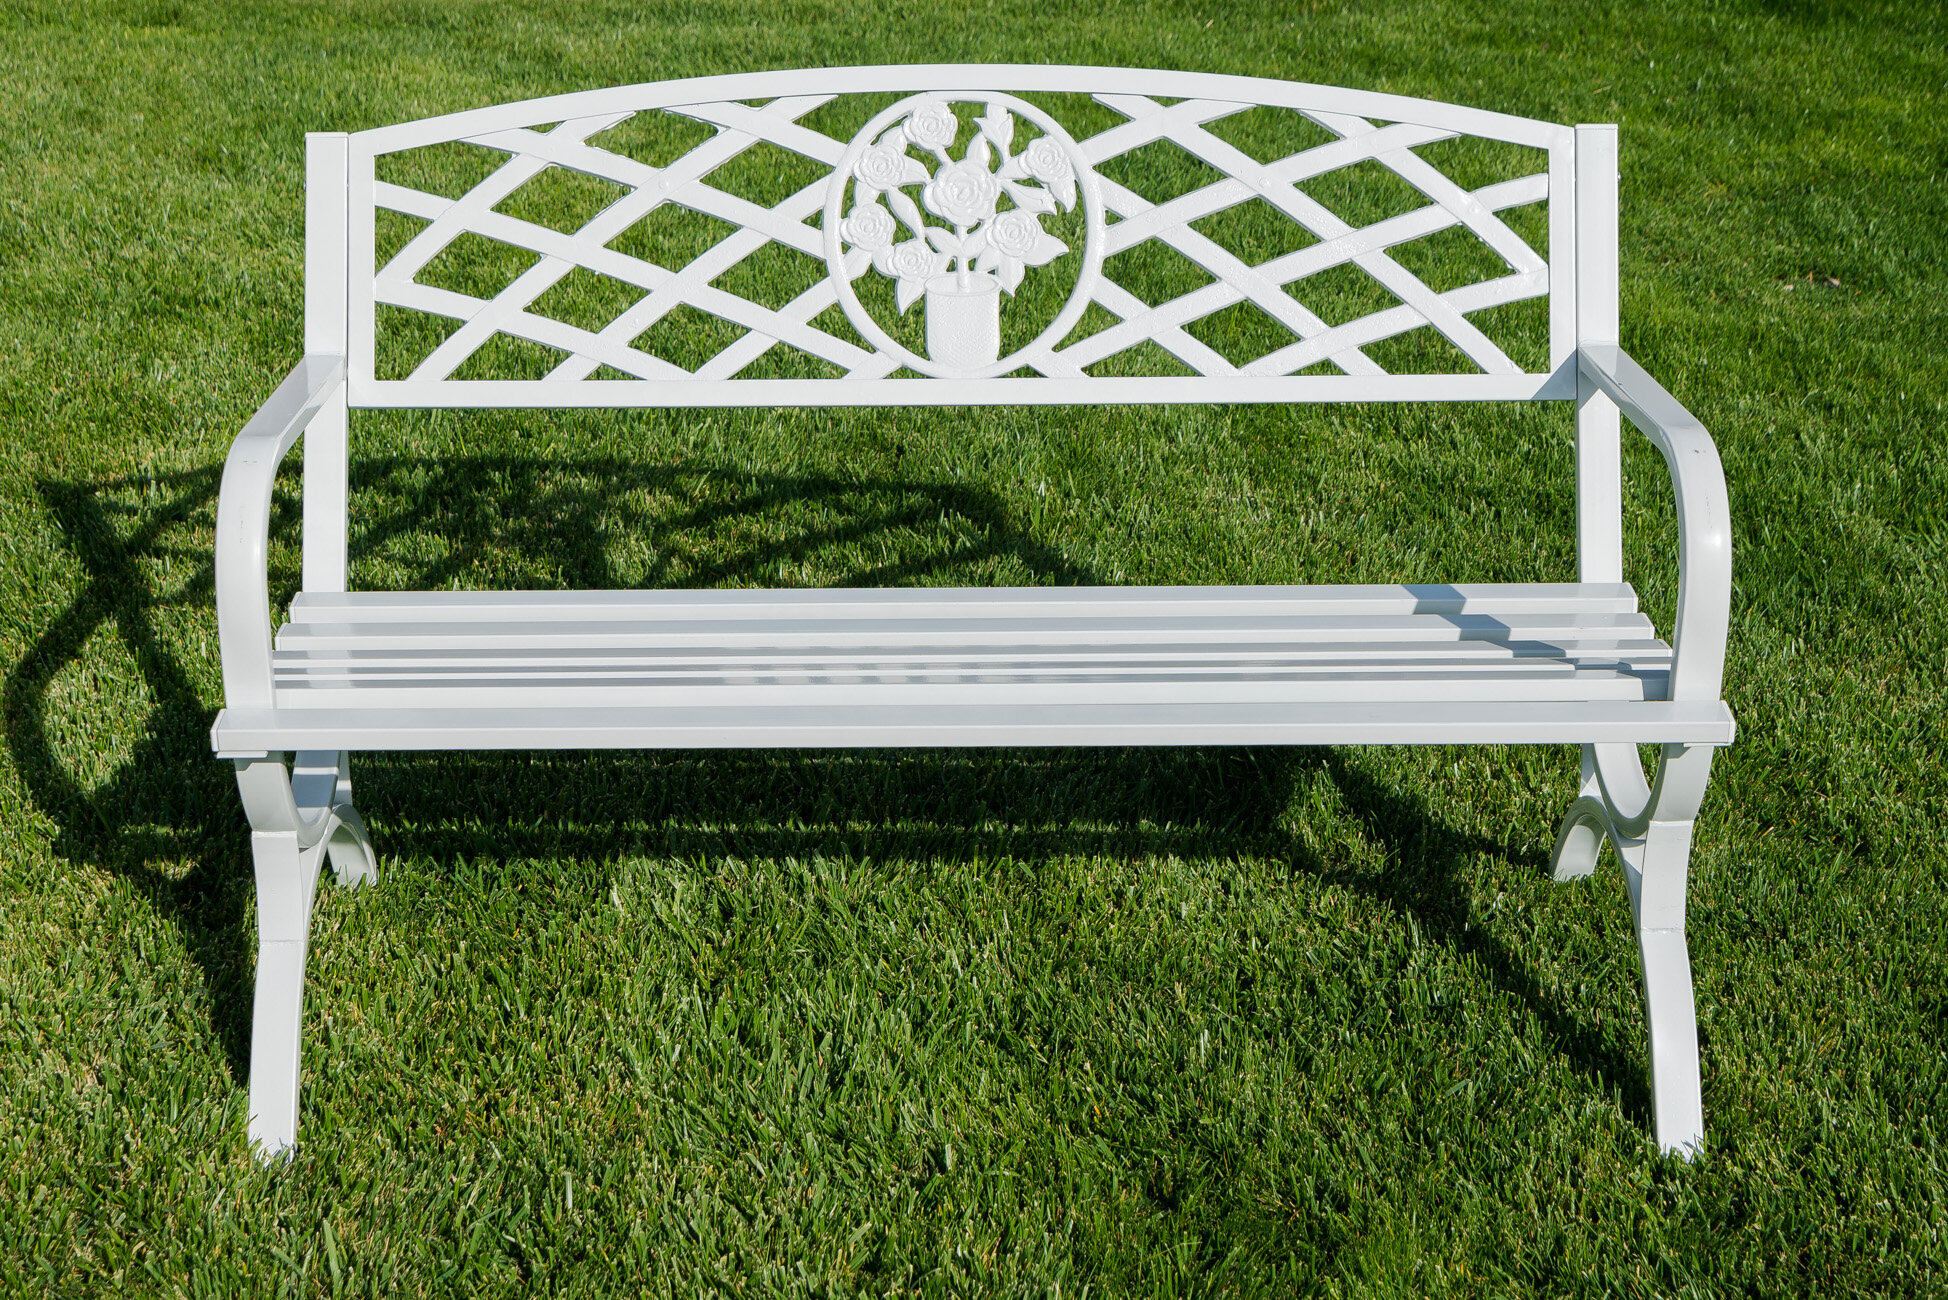 company buy living bench verdigris garden ironwork edit outdoor metal collection burford seater furniture curved